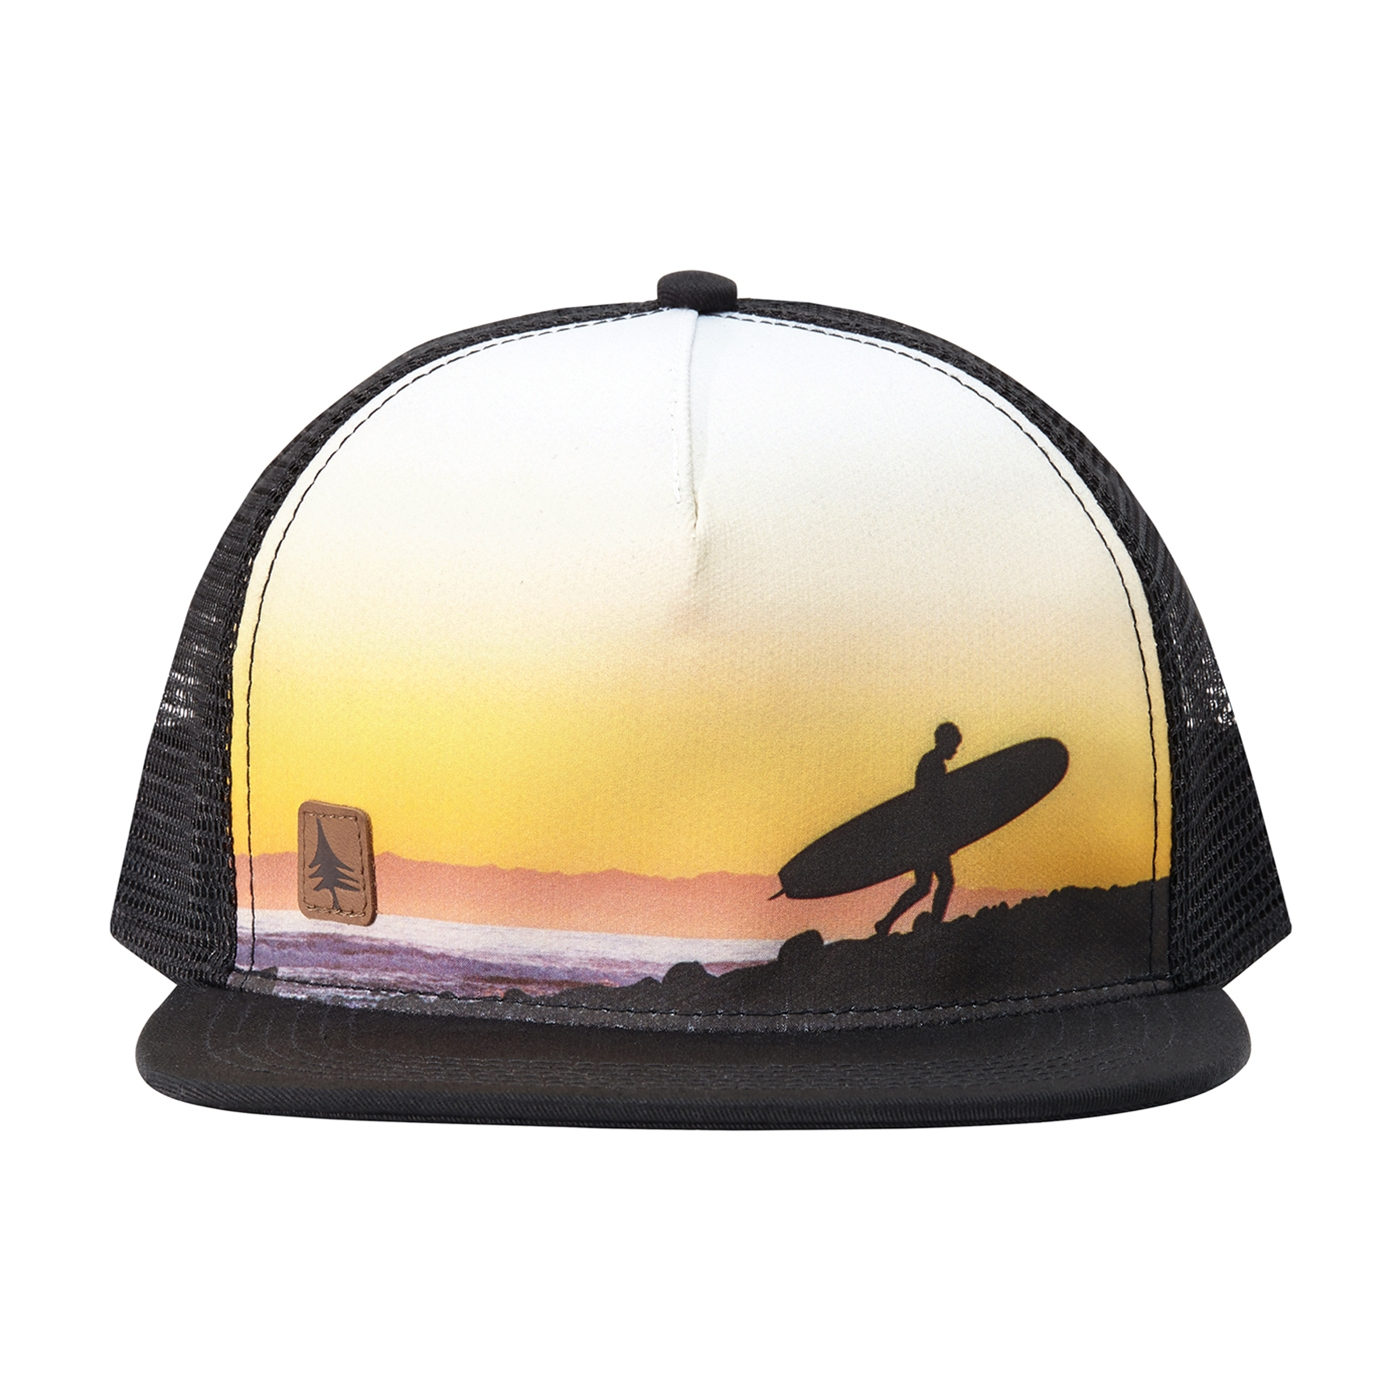 Rincon Hat Black   HippyTree 211f21f128d5